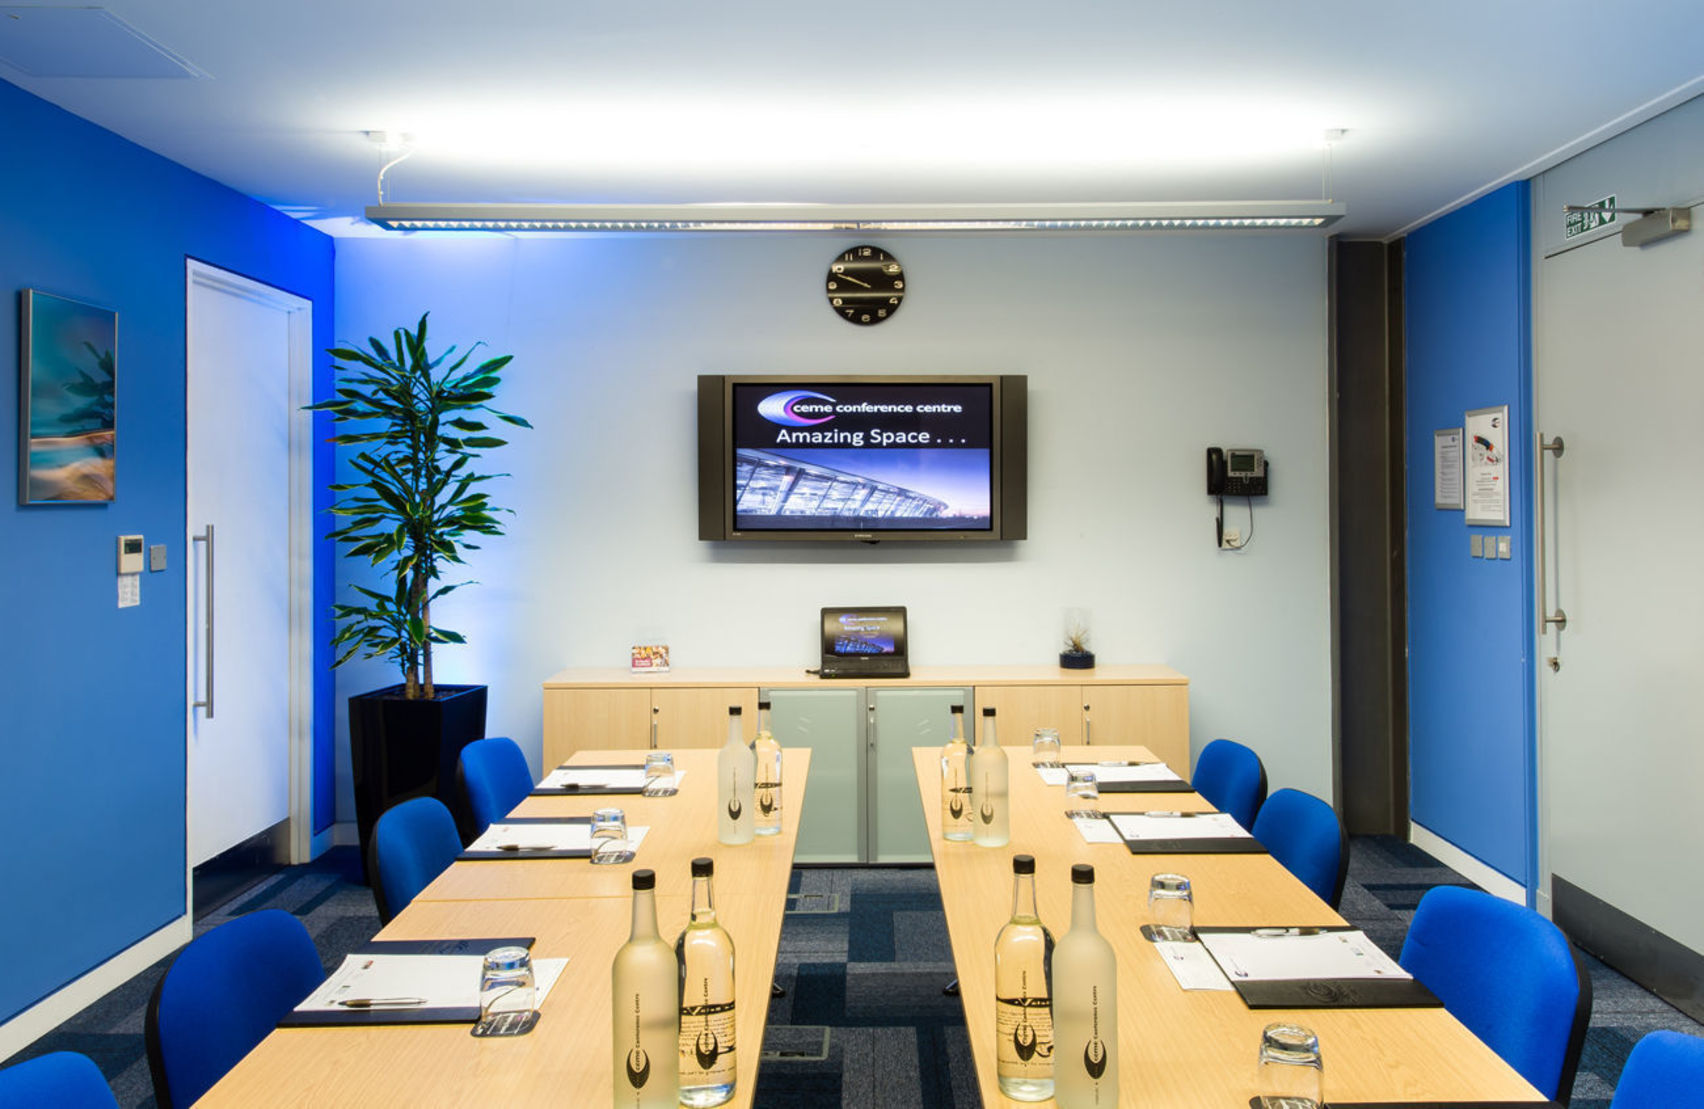 Medium Executive Room, CEME